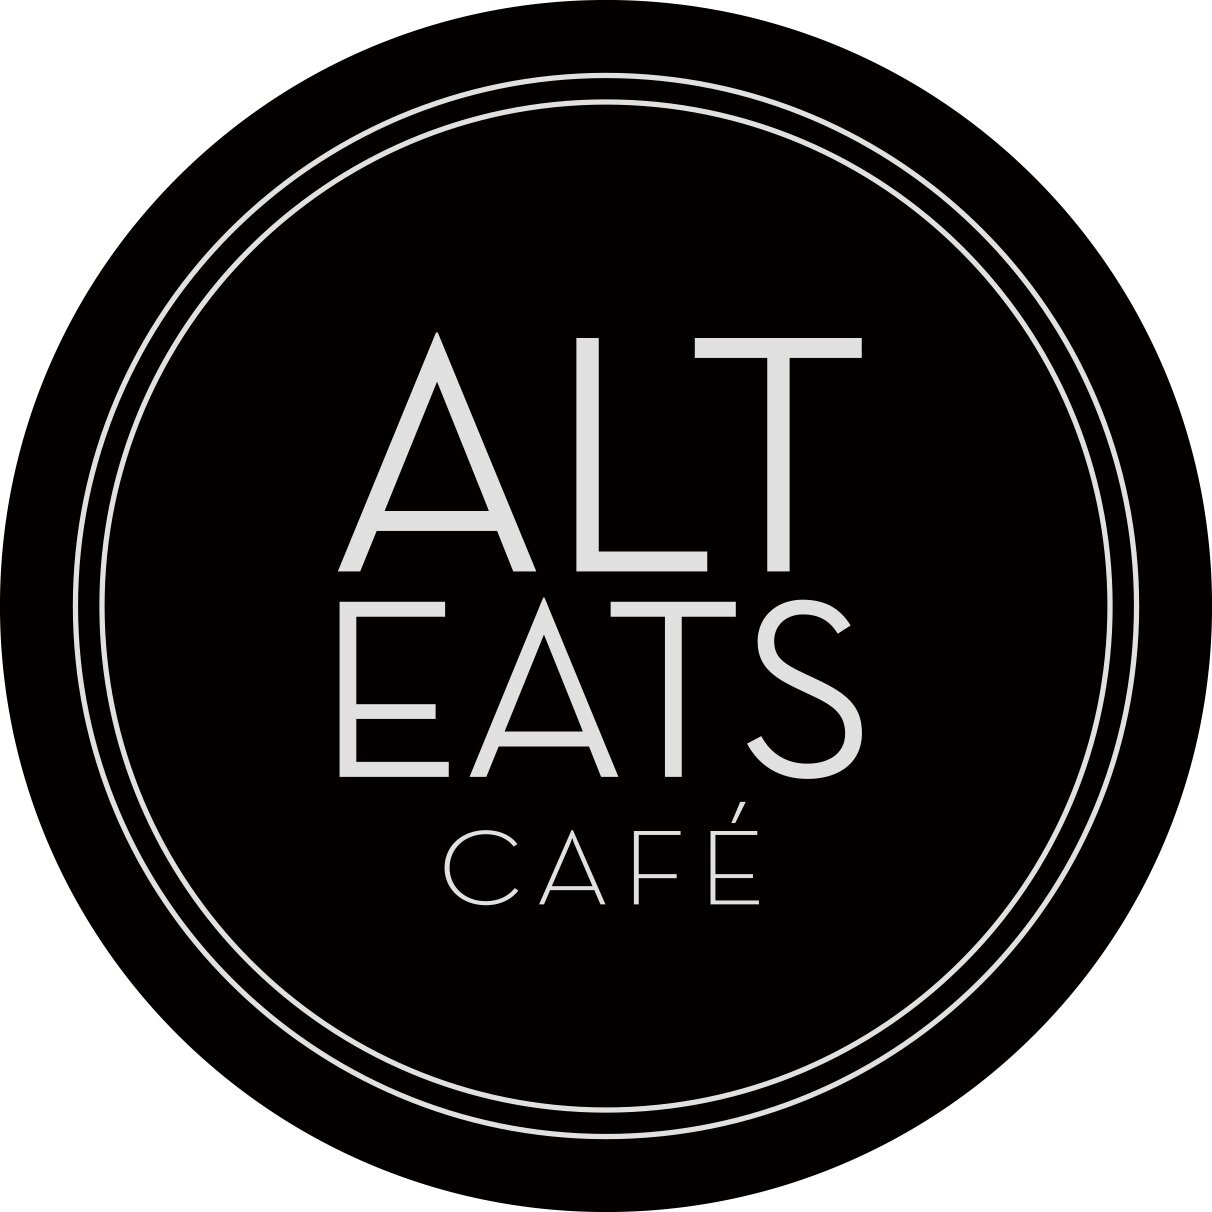 ALT EATS CAFE